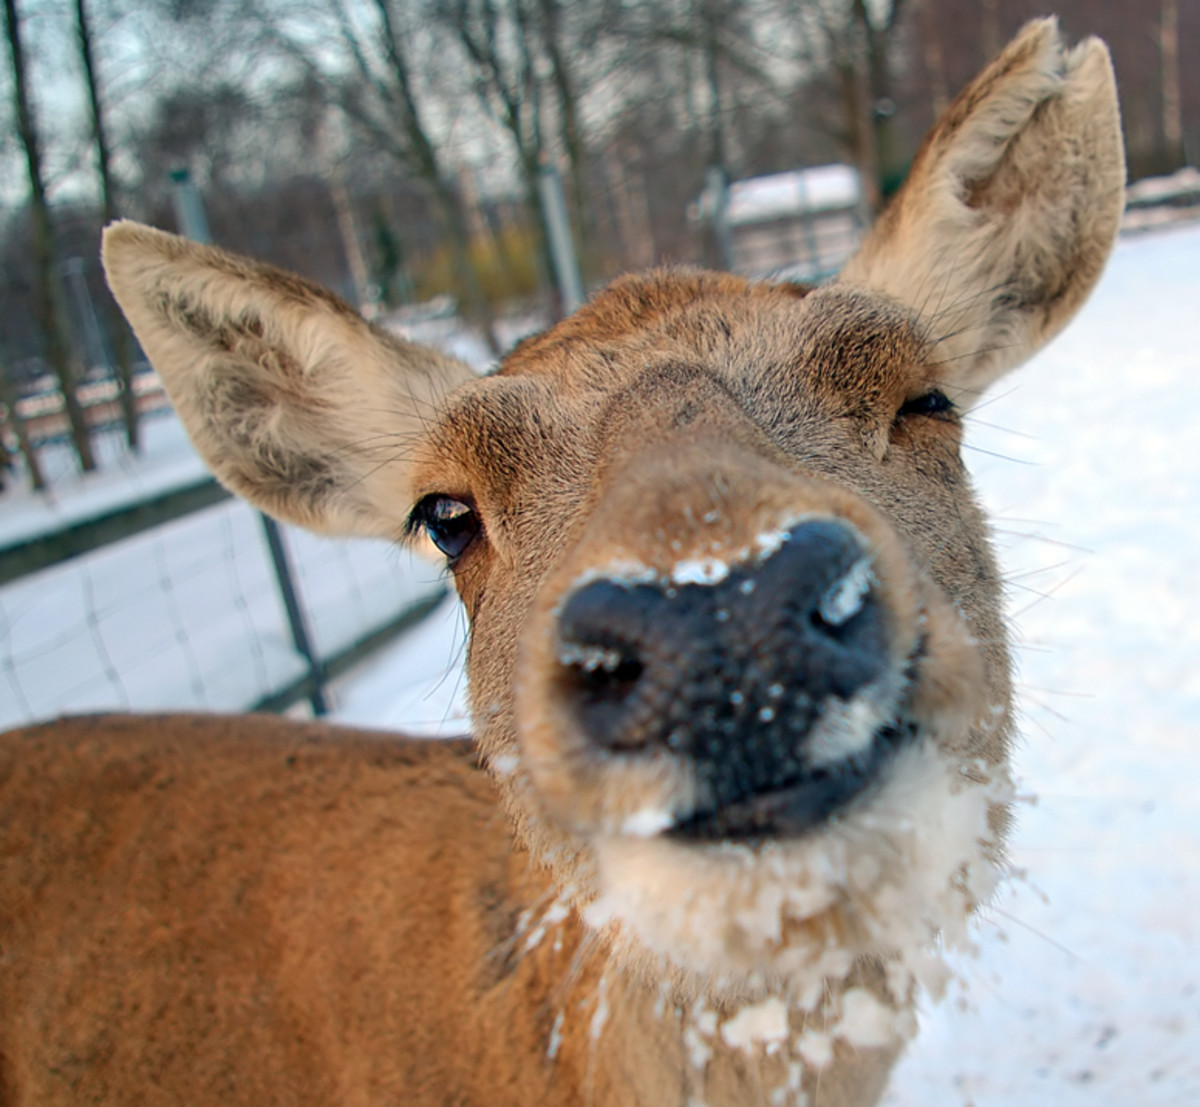 This deer is giving you a winkin'.